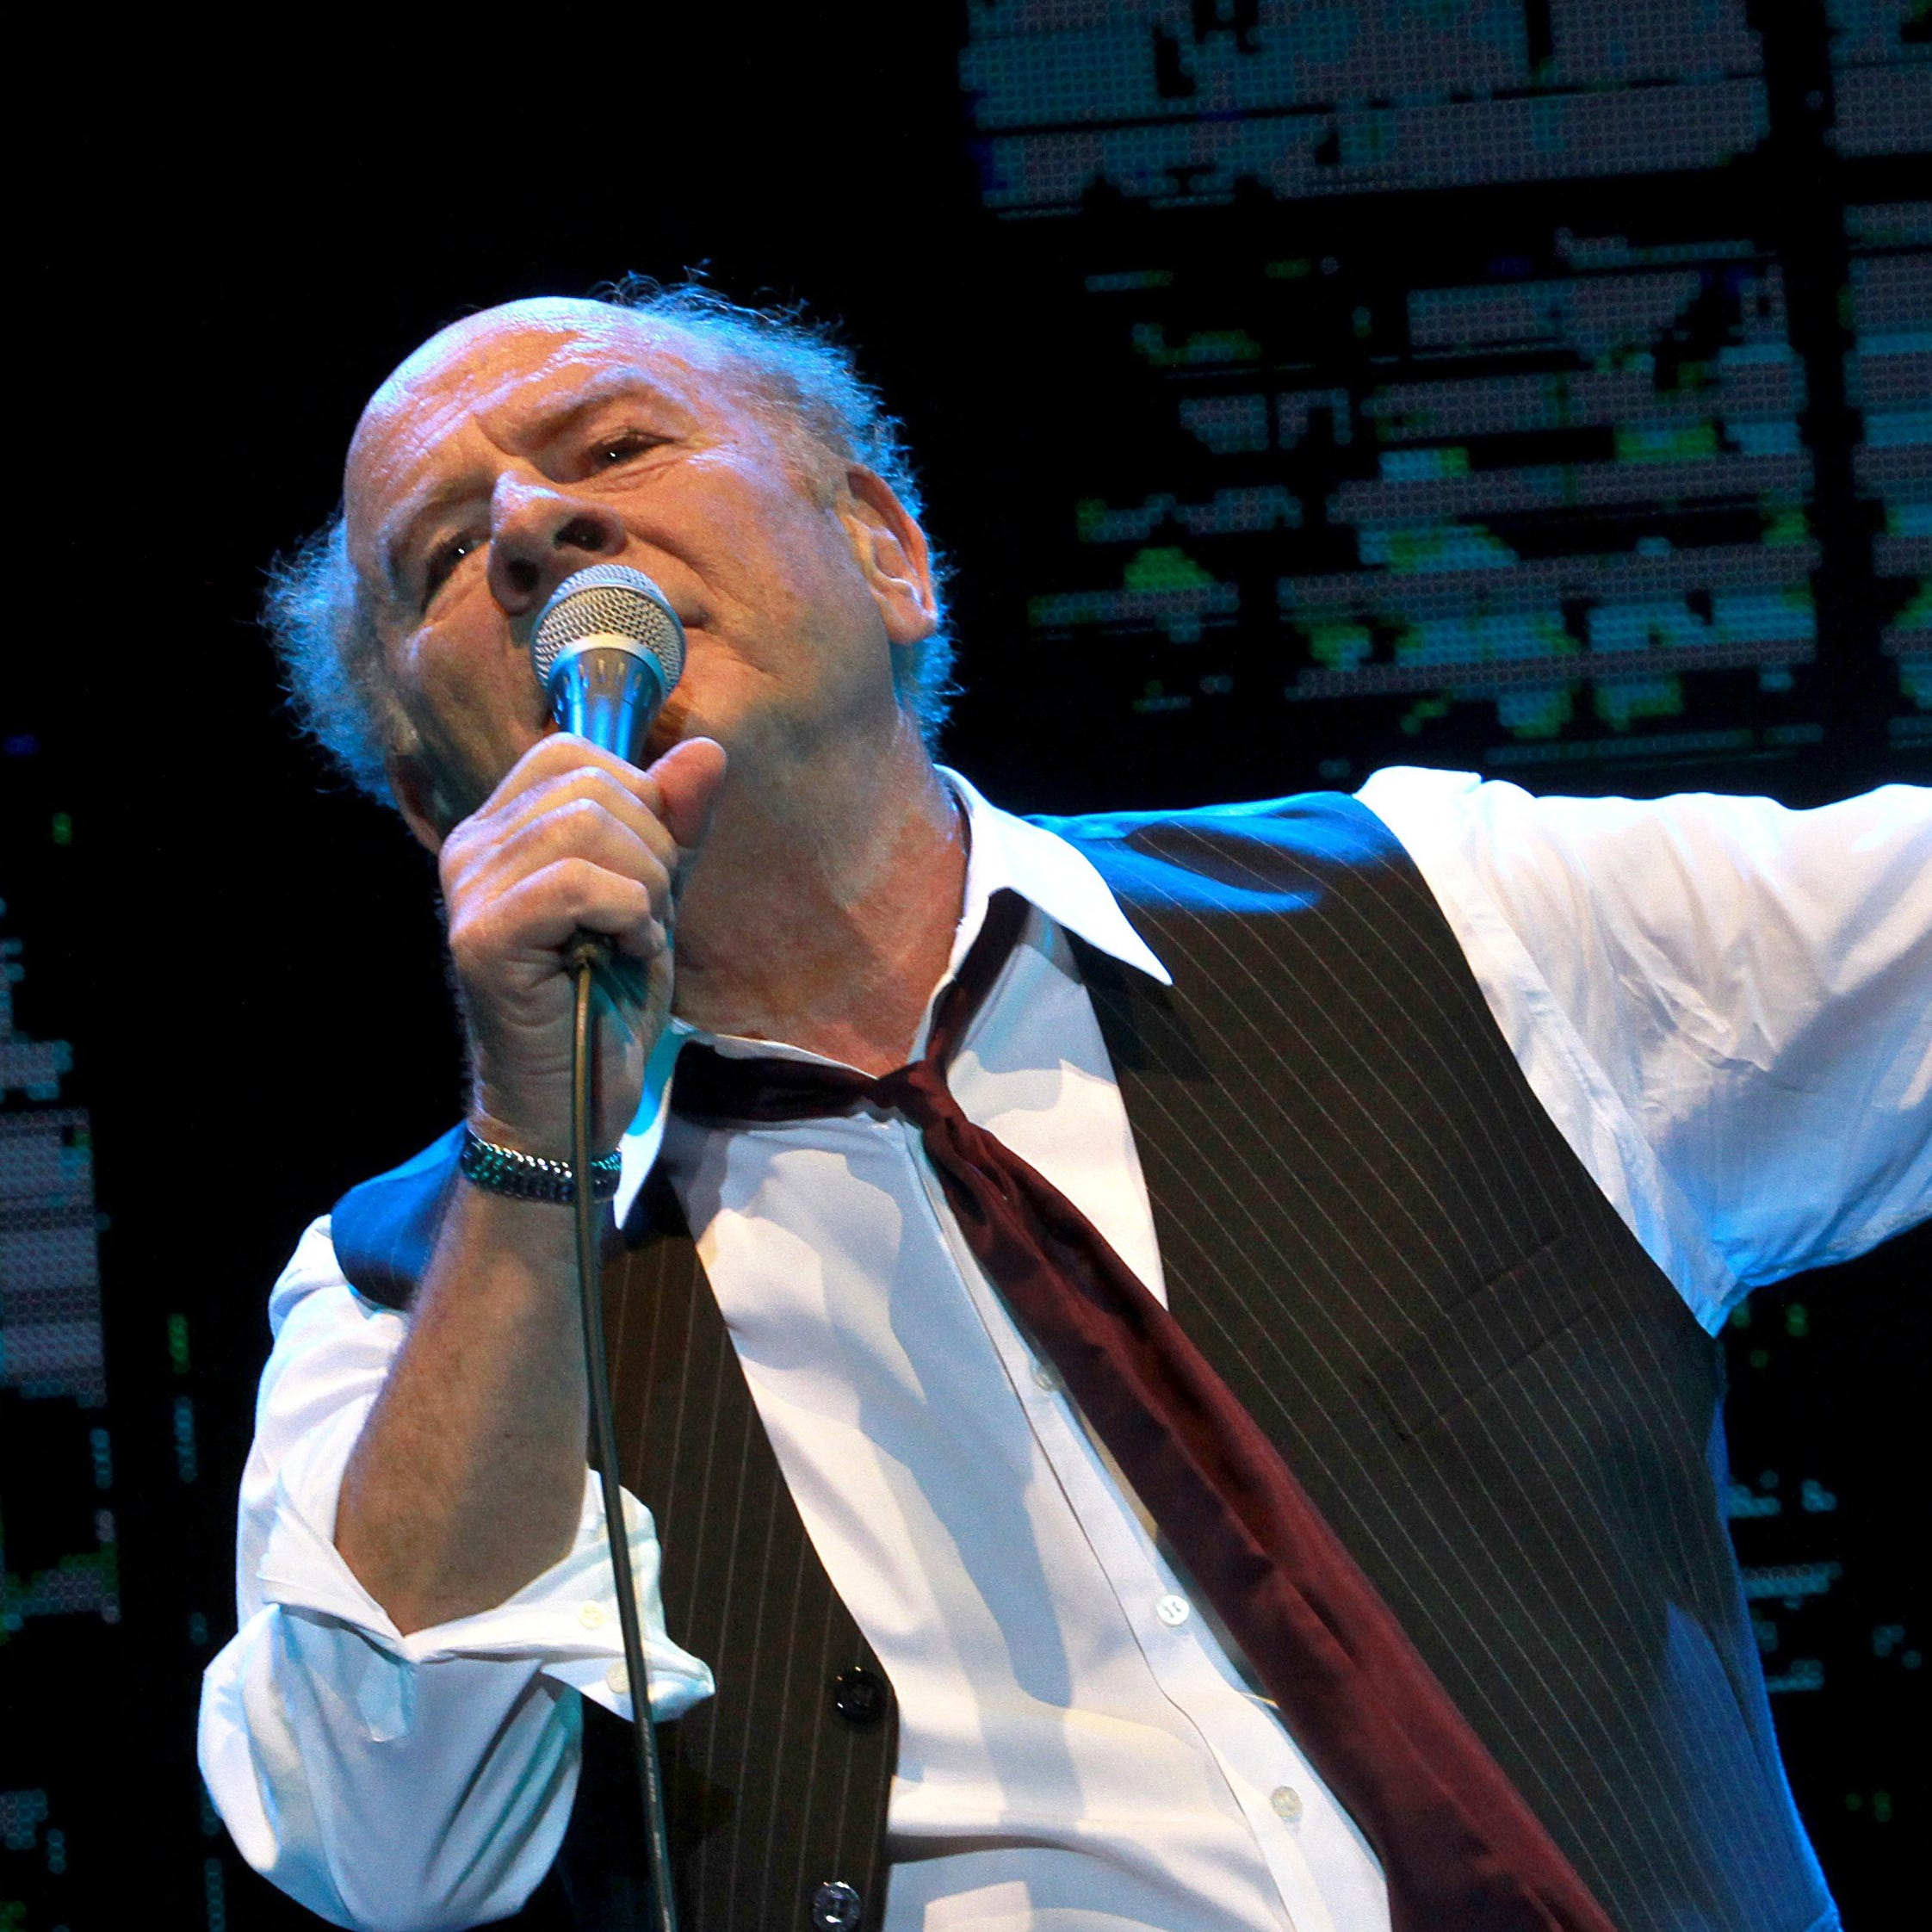 Disturb the sound of silence with rock legend Art Garfunkel at the Saenger | Seven days out